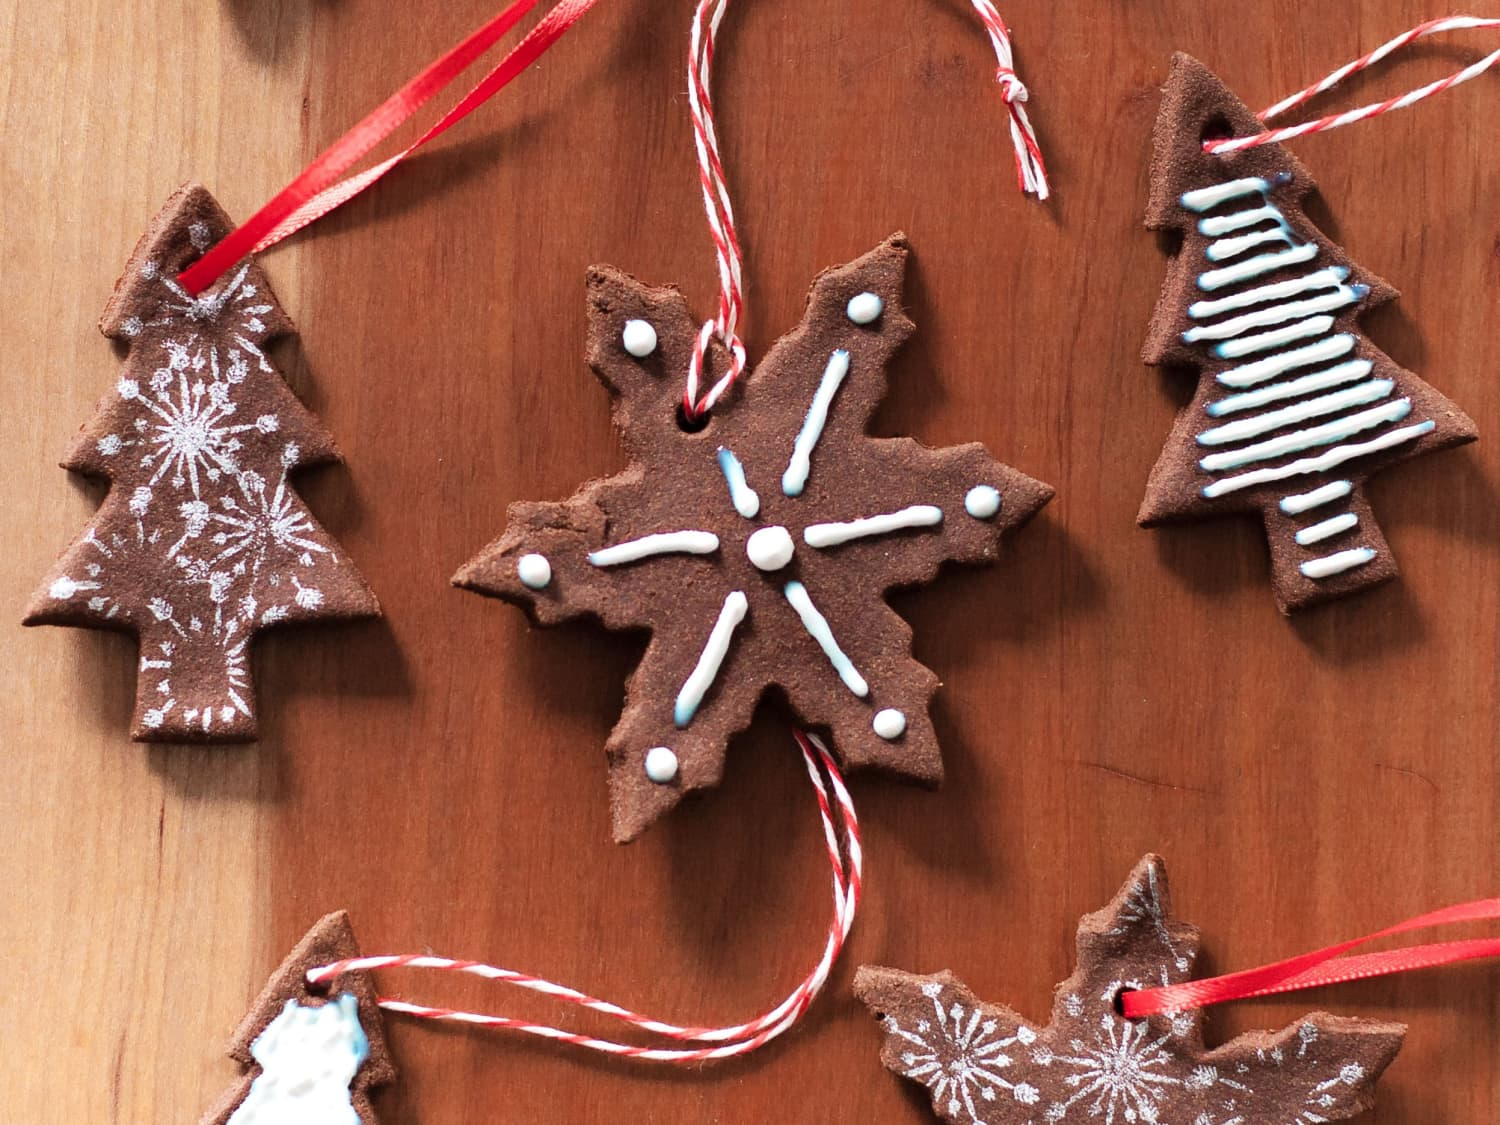 How To Make Cinnamon Dough Ornaments